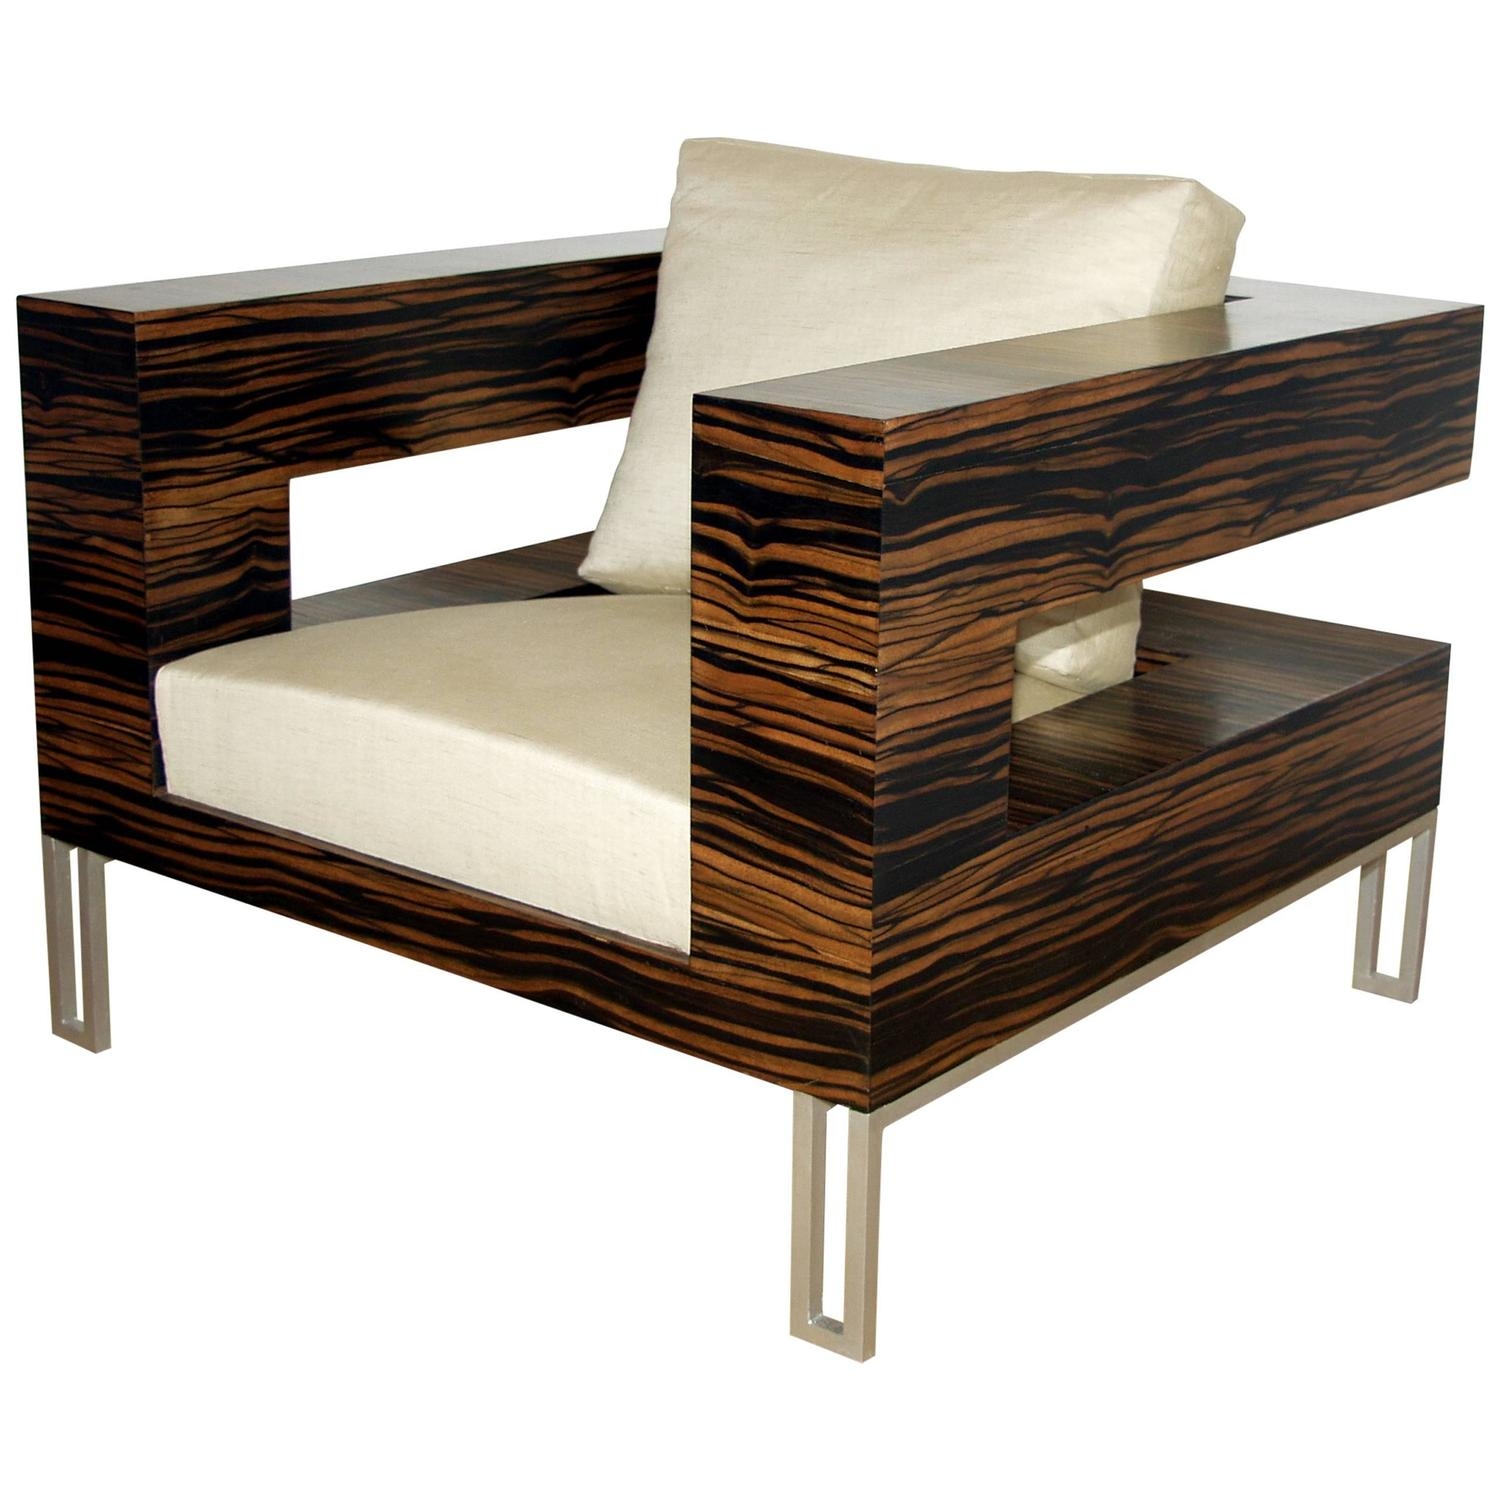 Aymeric Lefort Armchair A Bras Ouvert 21st Century In Ebony For Sale At 1stdibs